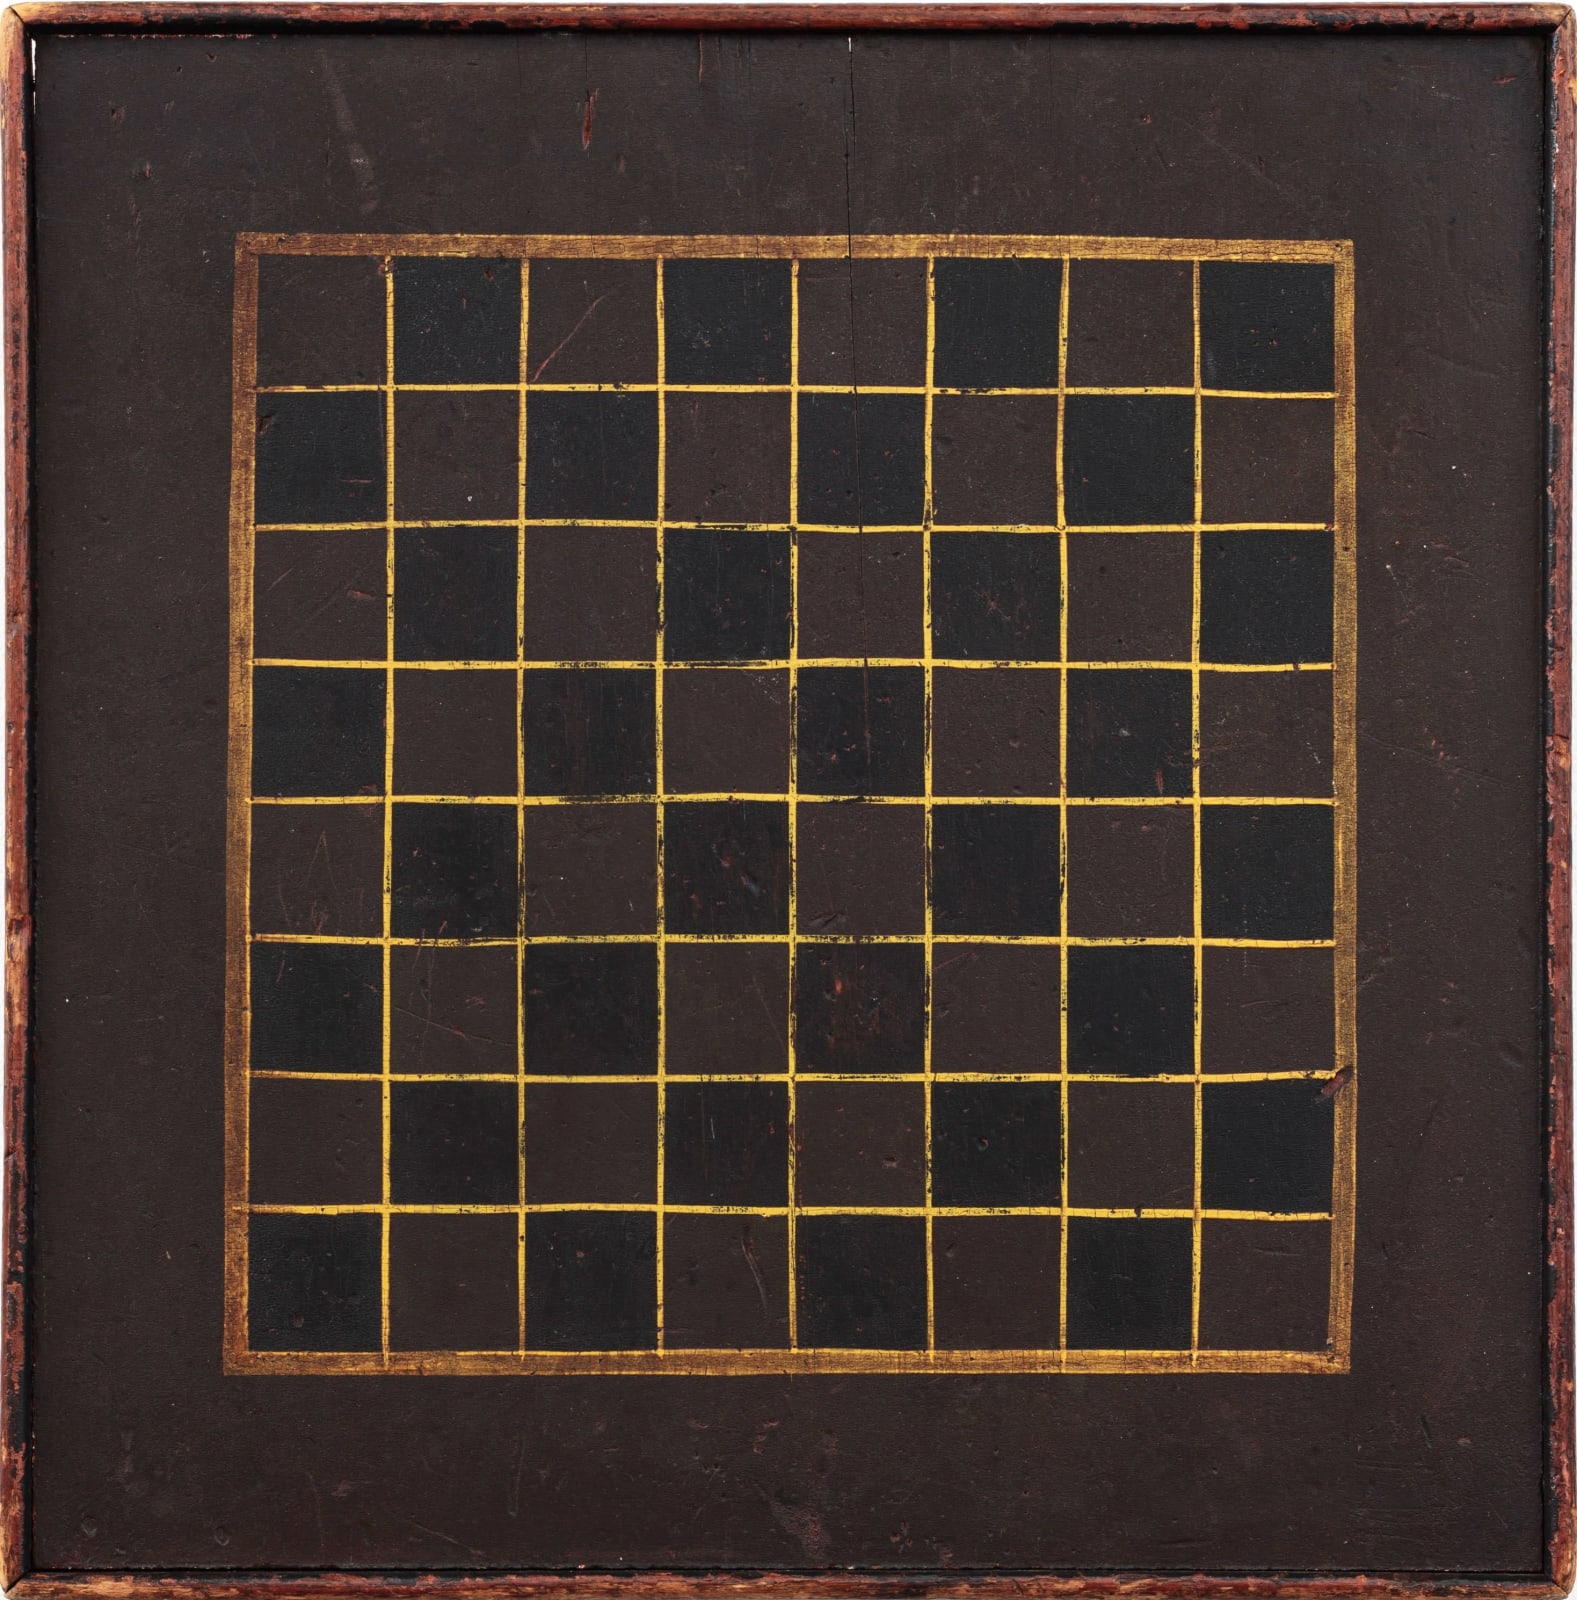 CHECKERS GAME BOARD, LATE 19TH CENTURY Original paint on wood 16 1/4 x 16 1/2 in. 41.3 x 41.9 cm. (AU 243)